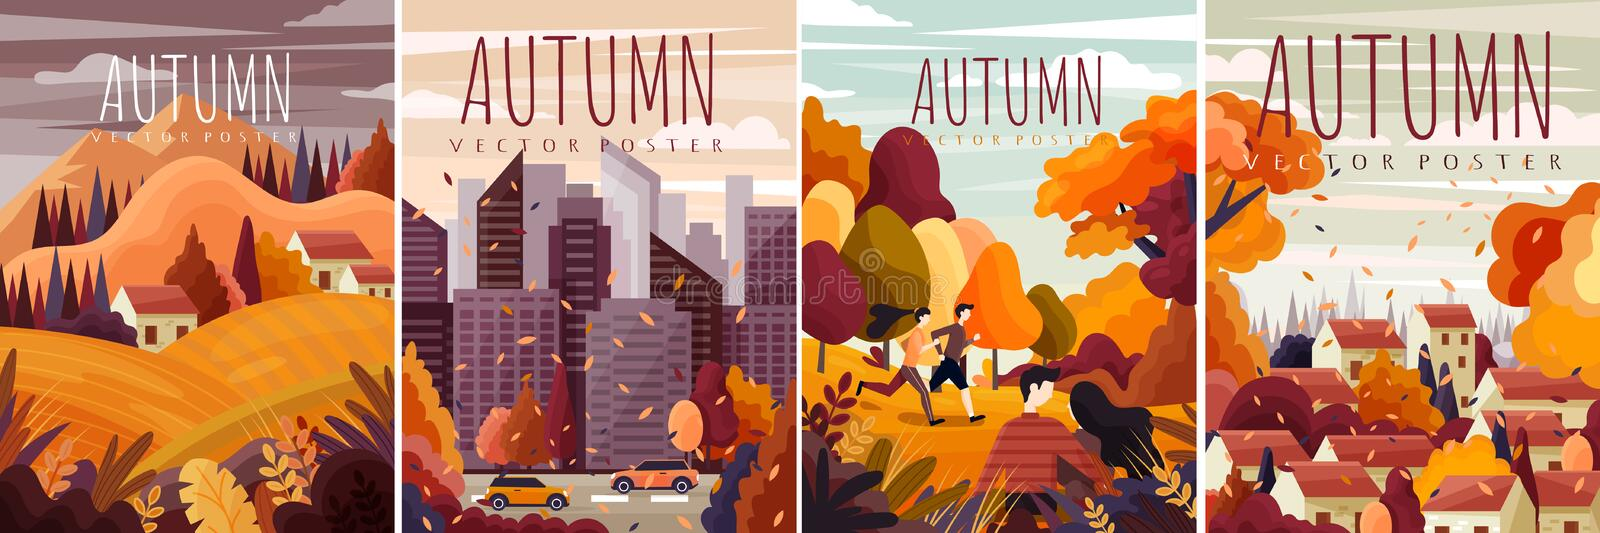 Set of Four different designs for Autumn posters with colorful fall landscapes, cityscape and country scenes in a vector illustration